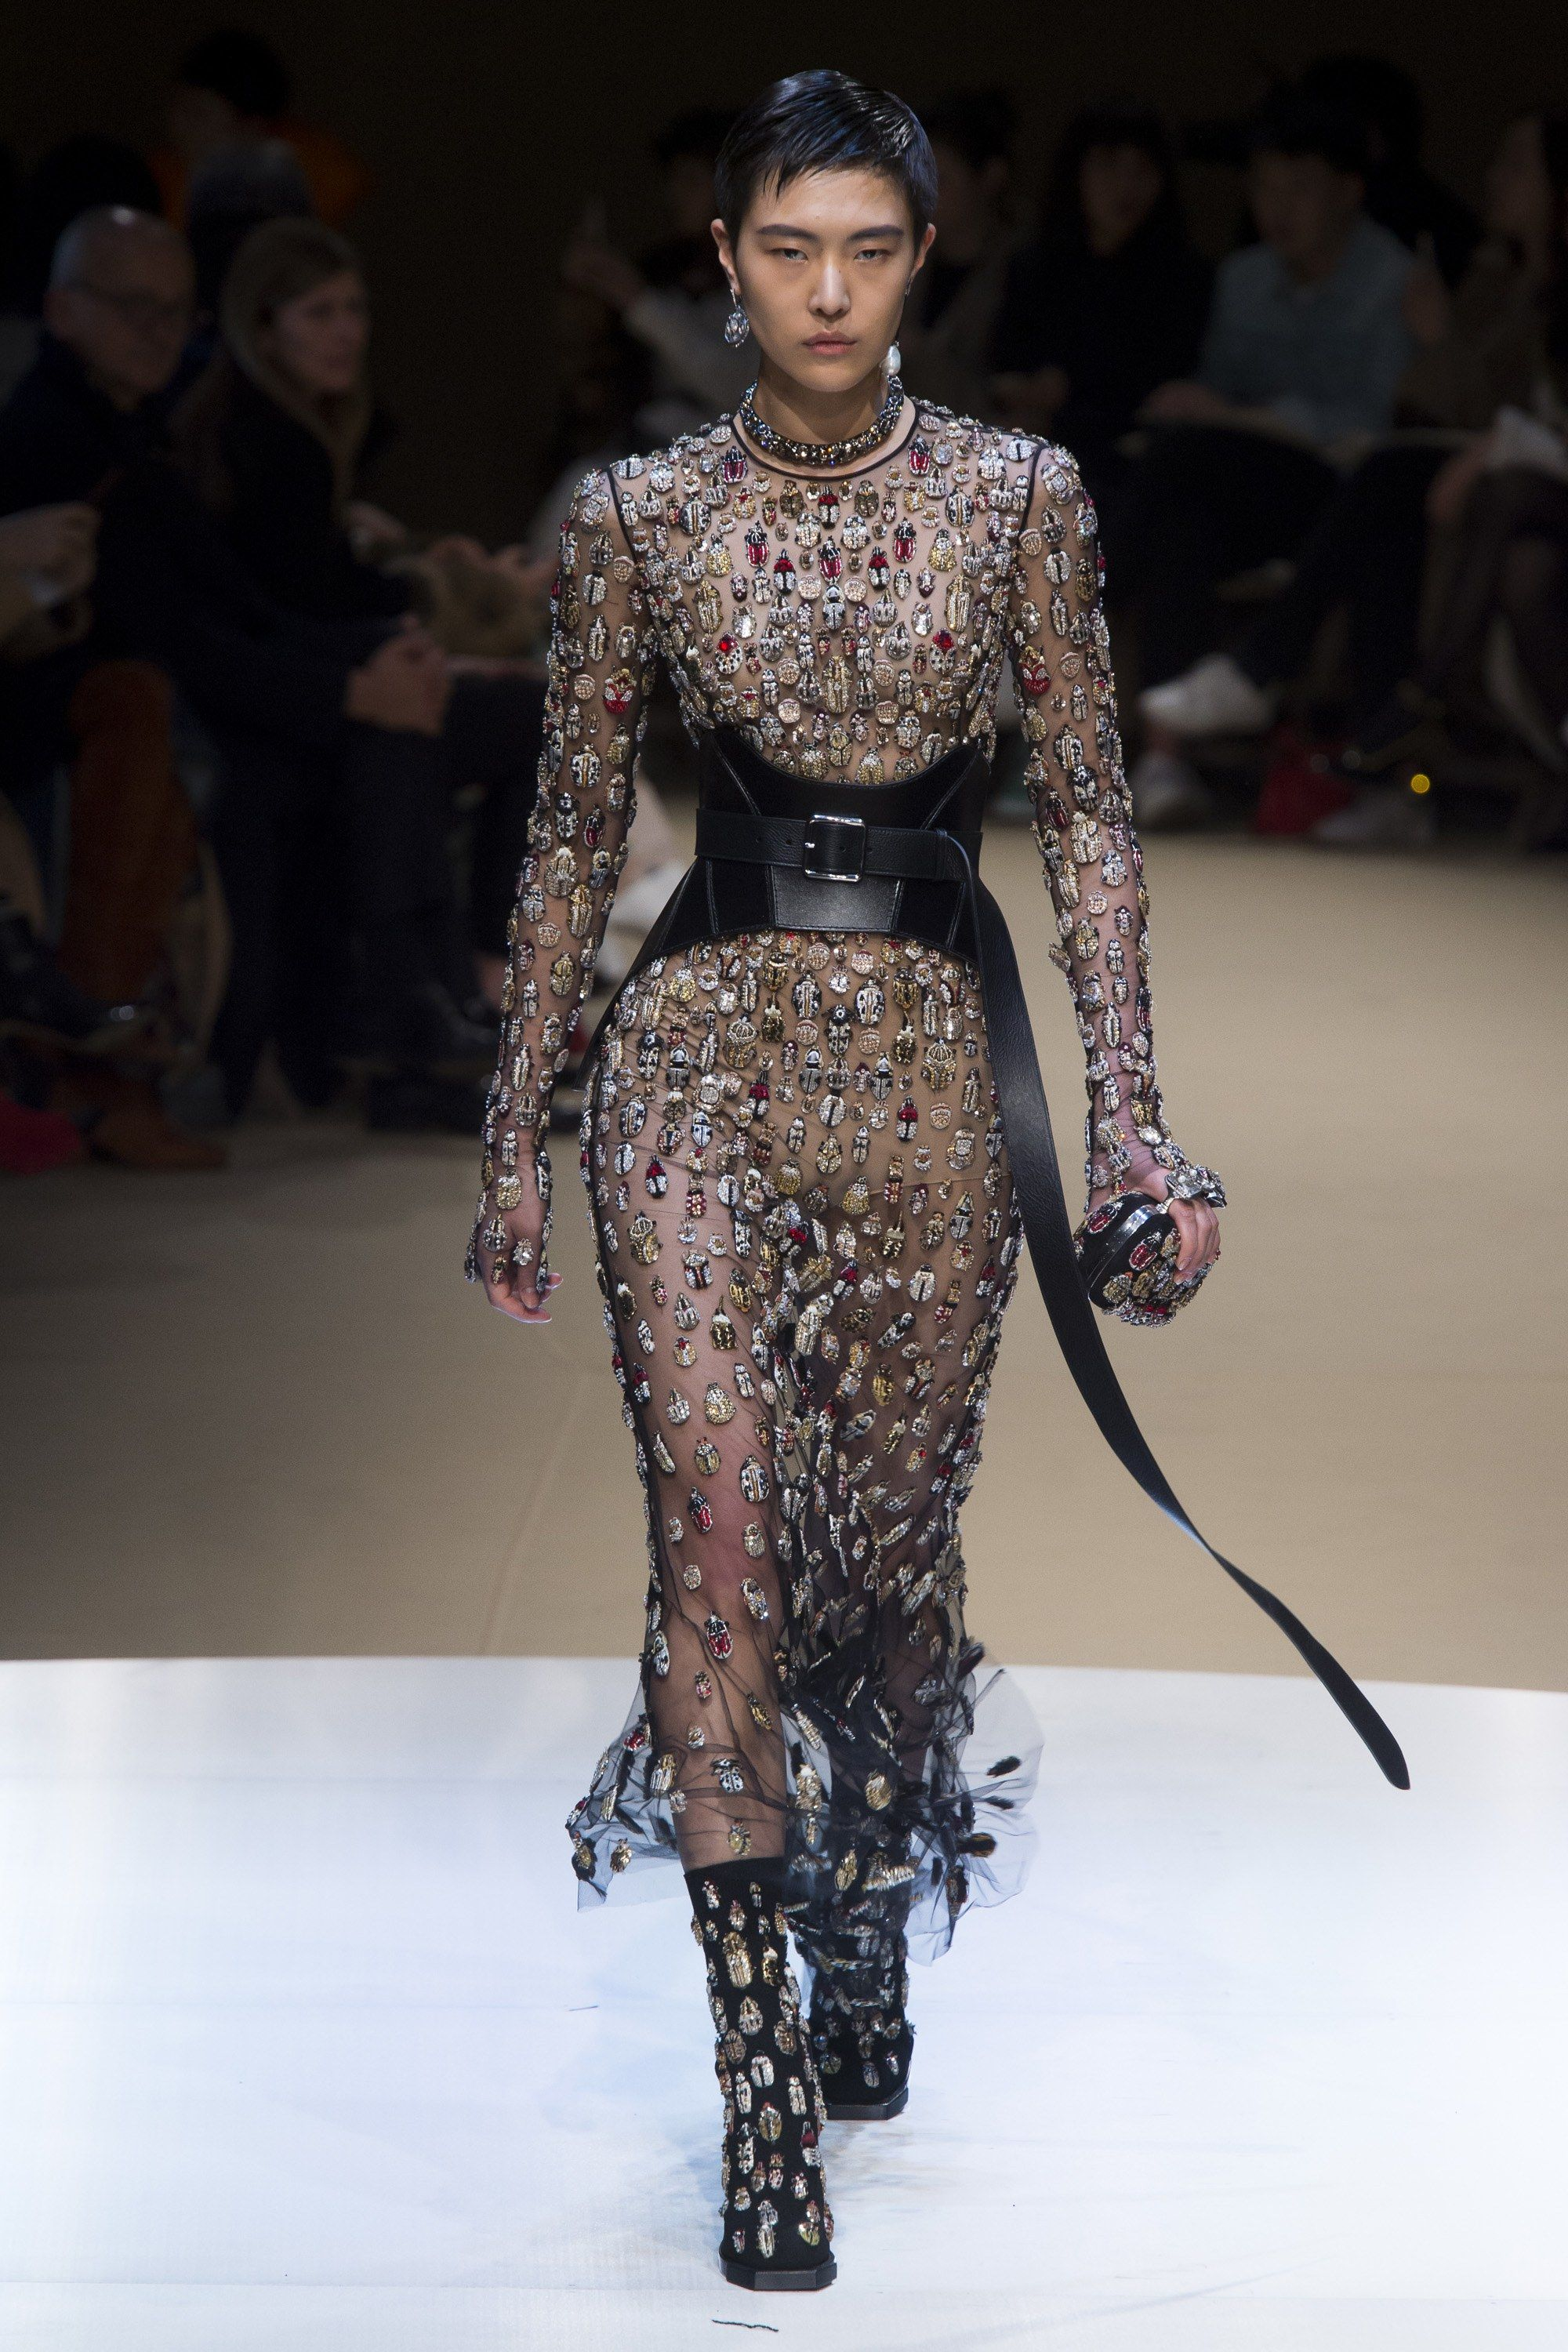 Alexander McQueen Fall 2018 Ready-to-Wear Fashion Show in ...